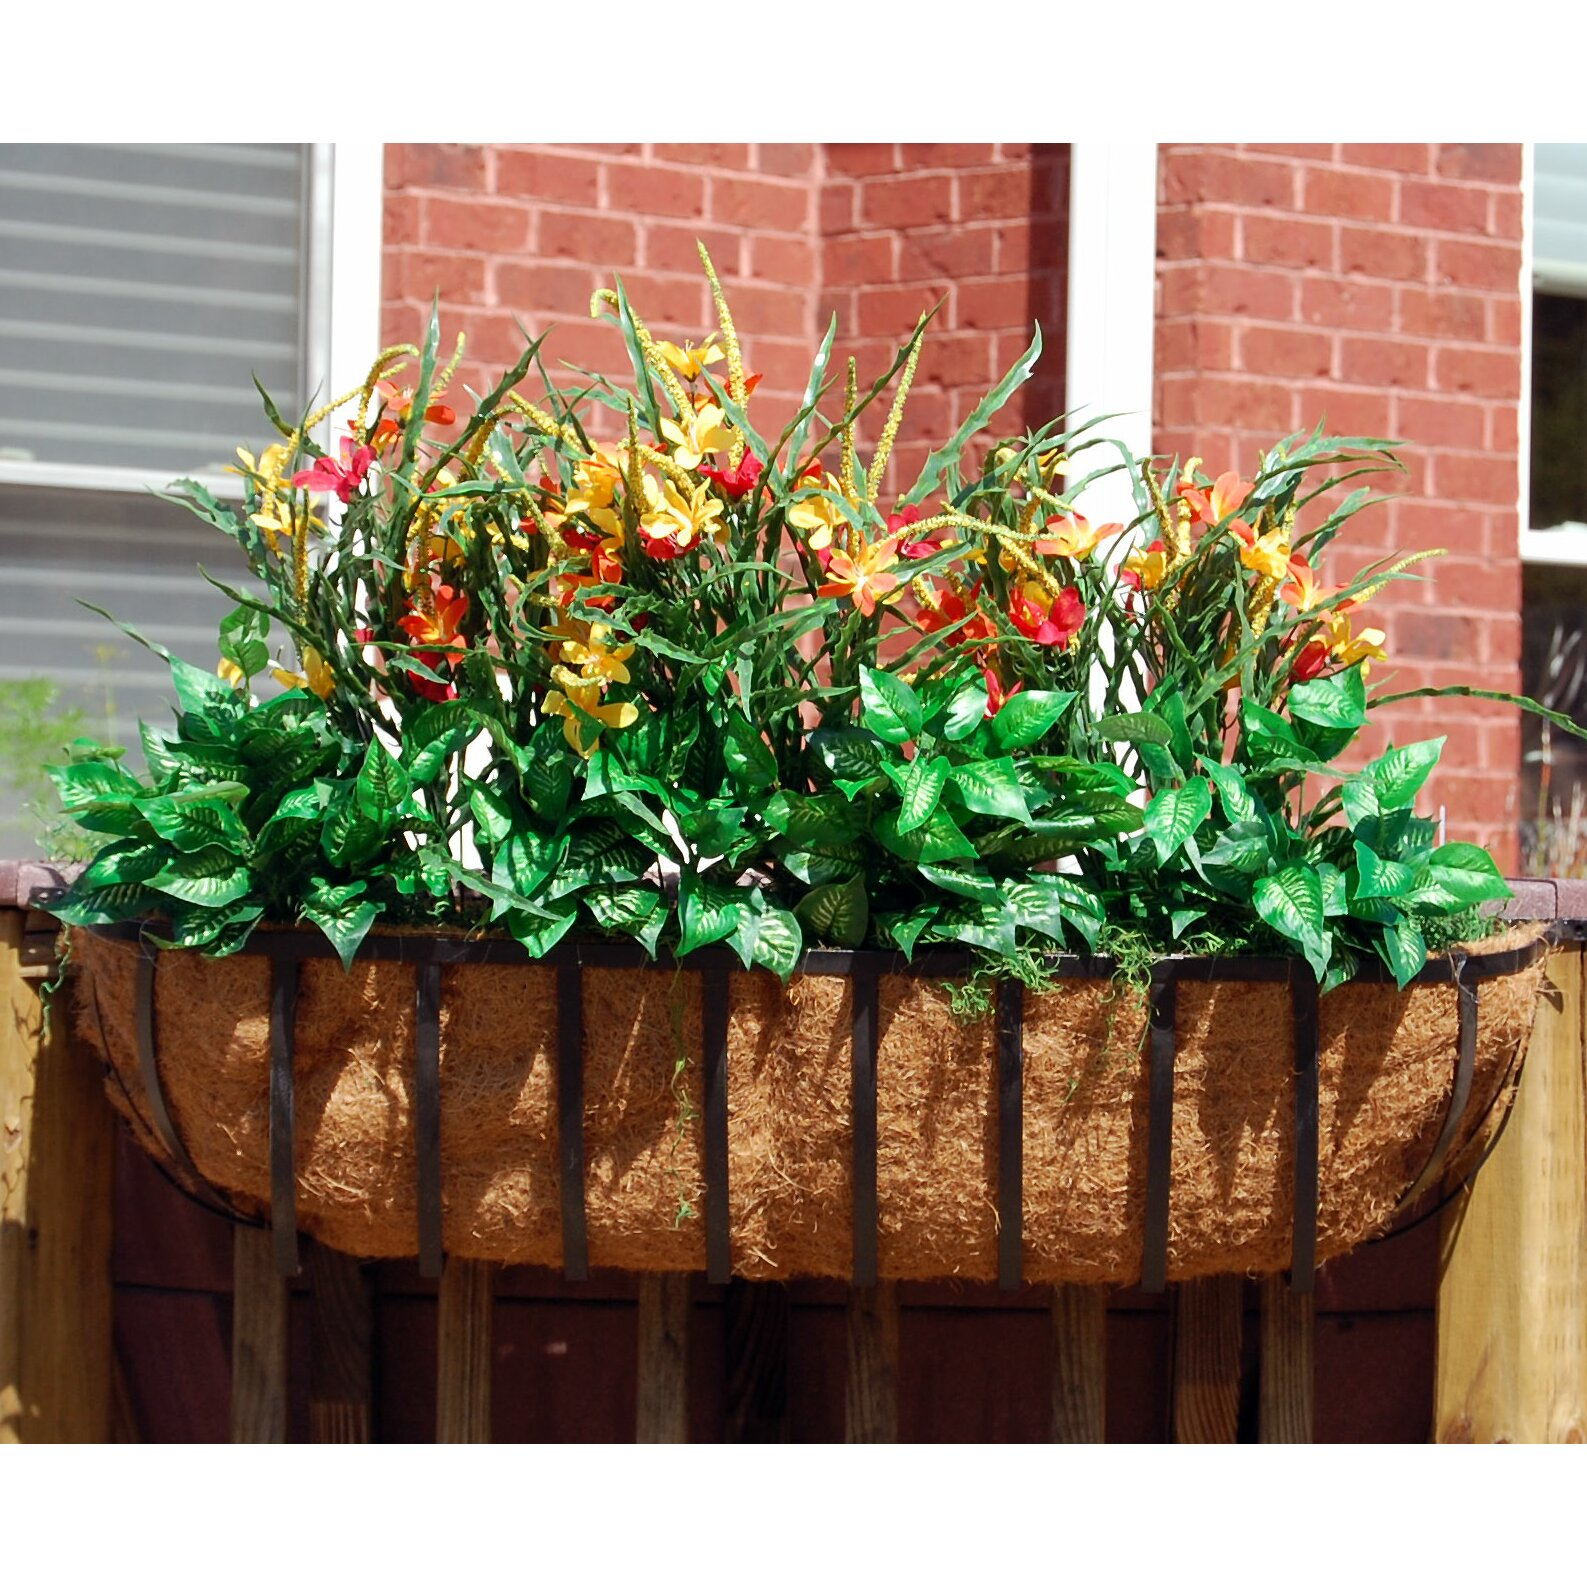 Griffith creek designs newport rectangular window box for Wayfair garden box